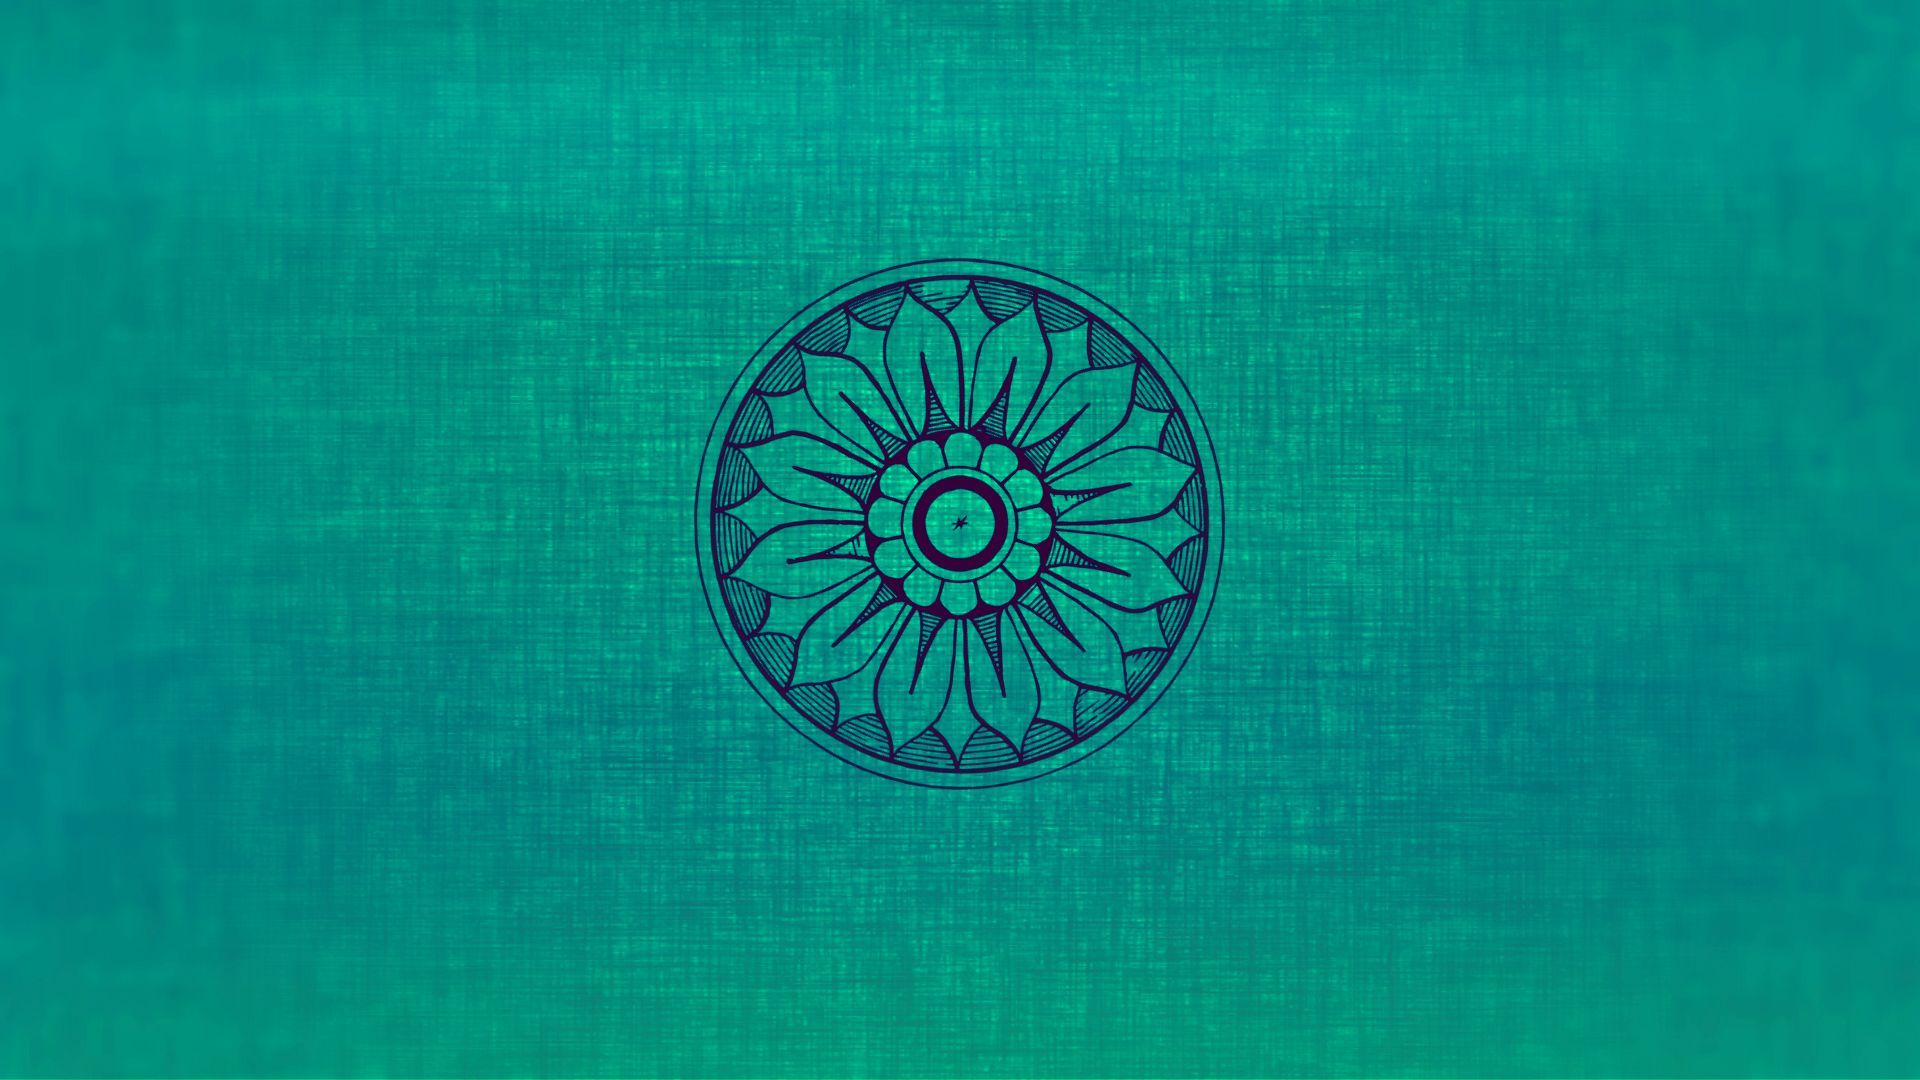 Turquoise Laptop Wallpapers Top Free Turquoise Laptop